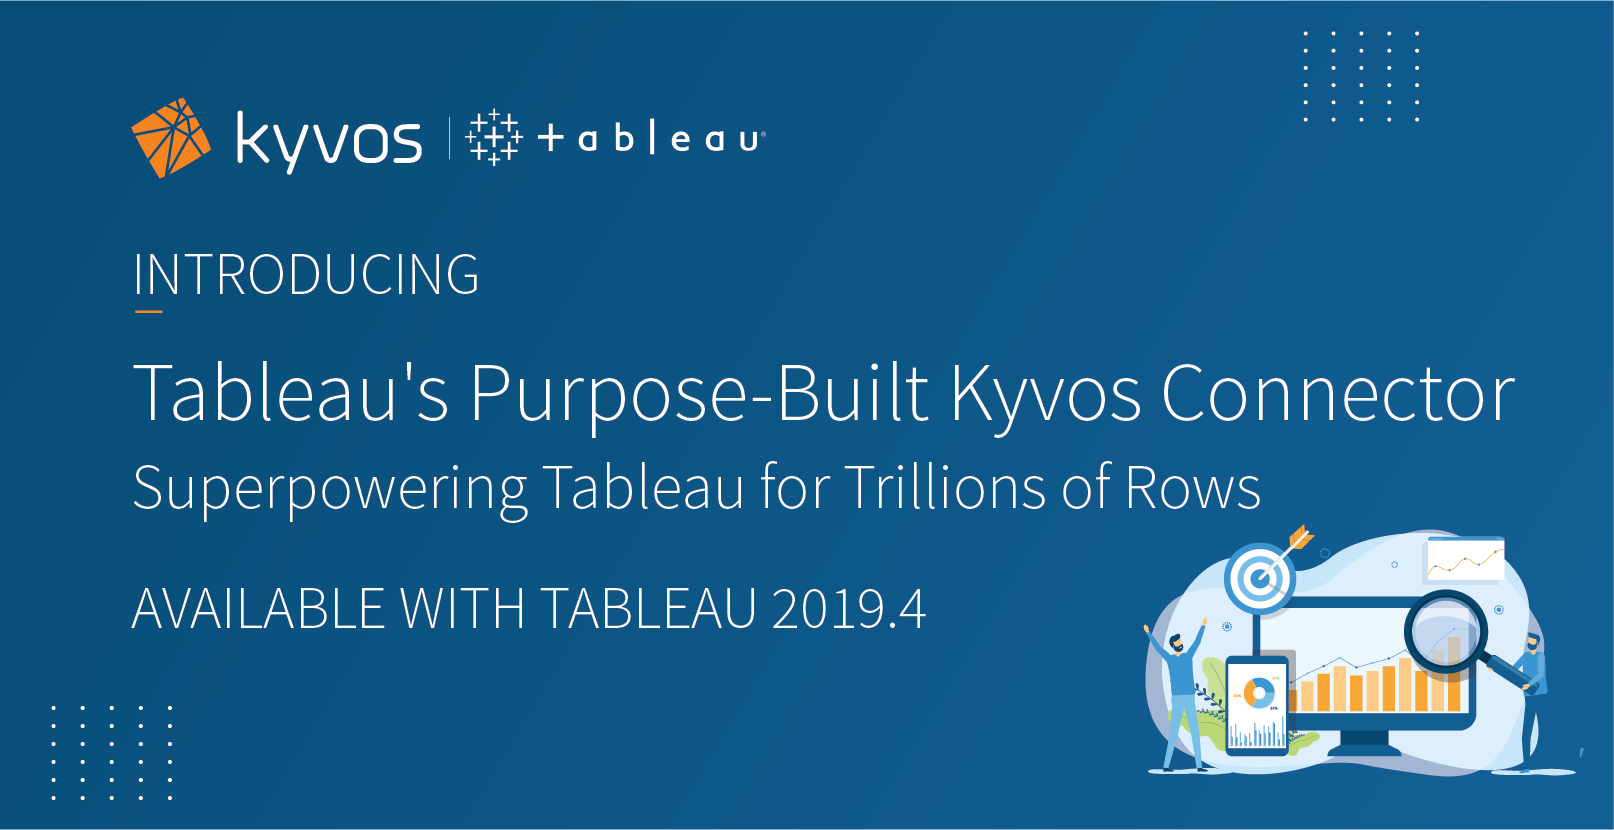 Tableau releases new Purpose-Built Kyvos Connector: Supercharging Tableau for Trillions of Rows